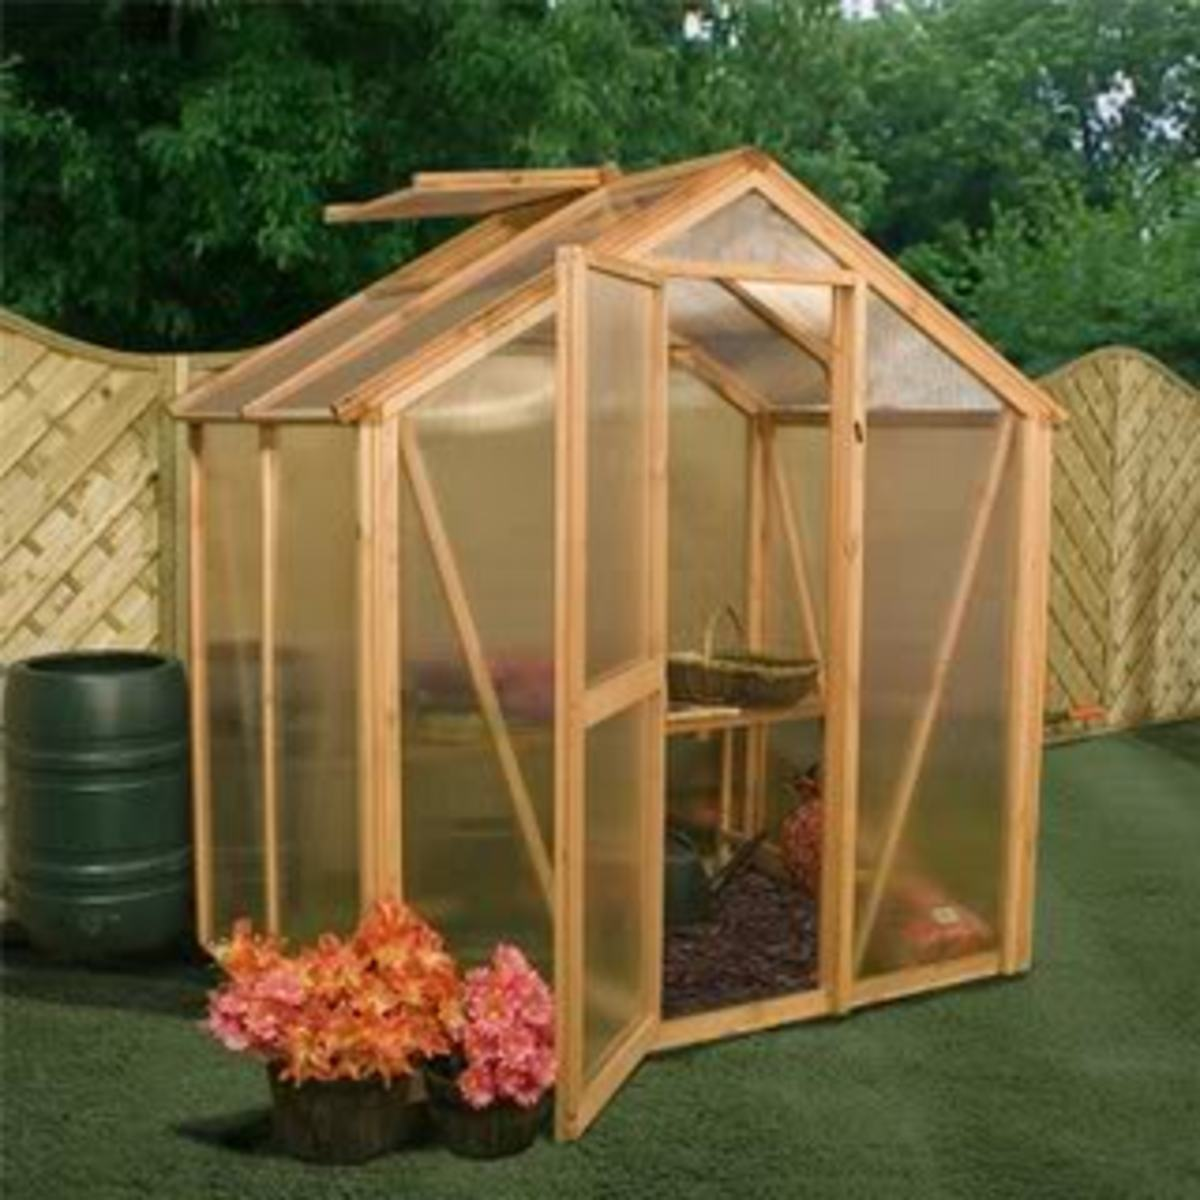 Build a Victorian Greenhouse